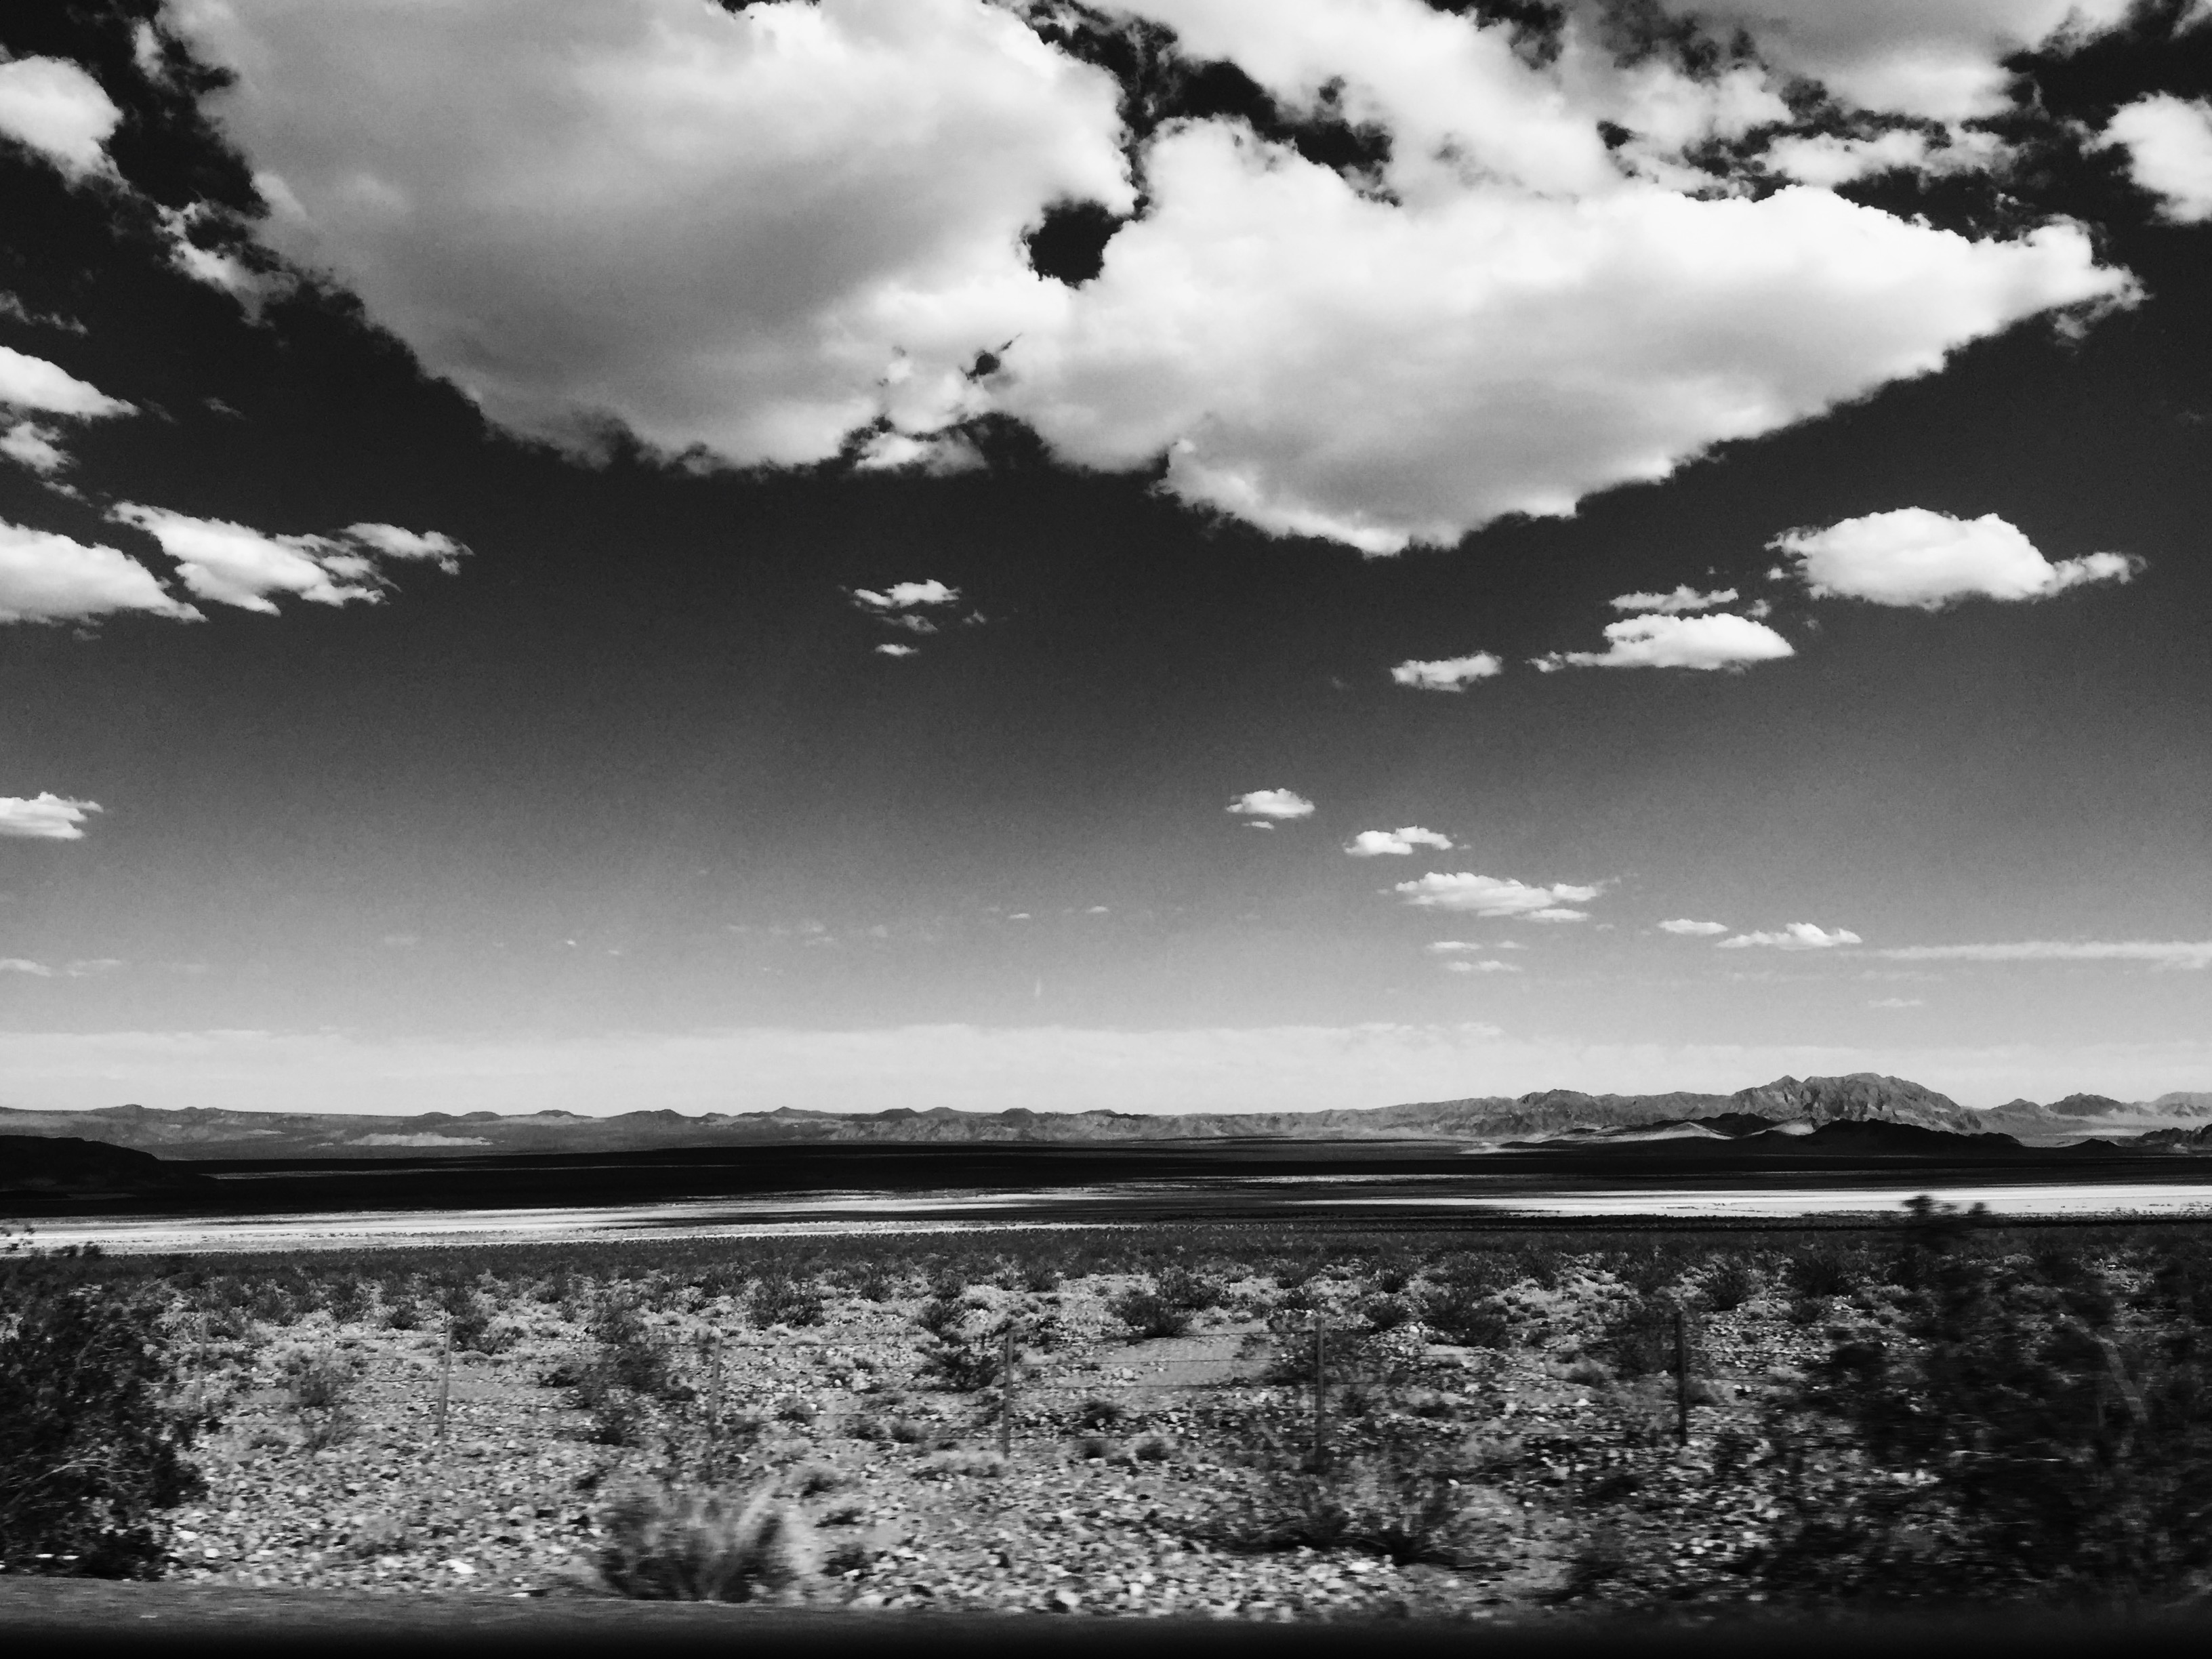 On the way to Las Vegas Nevada on the 15 highway in California black and white view of the desert